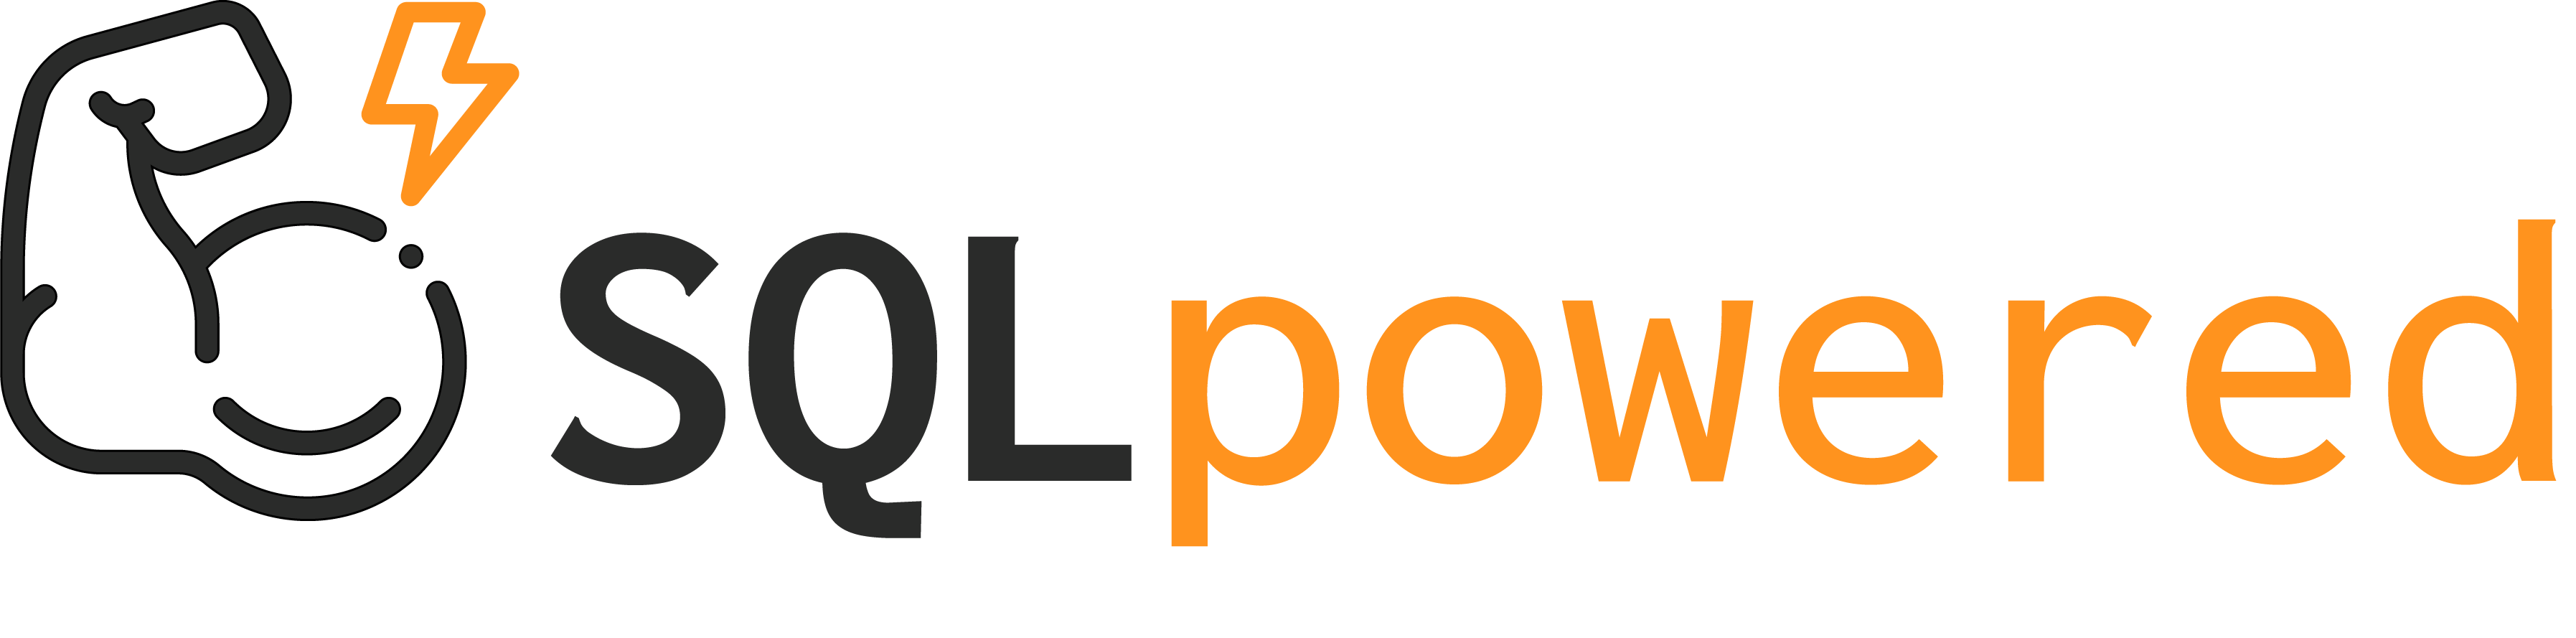 SQLpowered.com